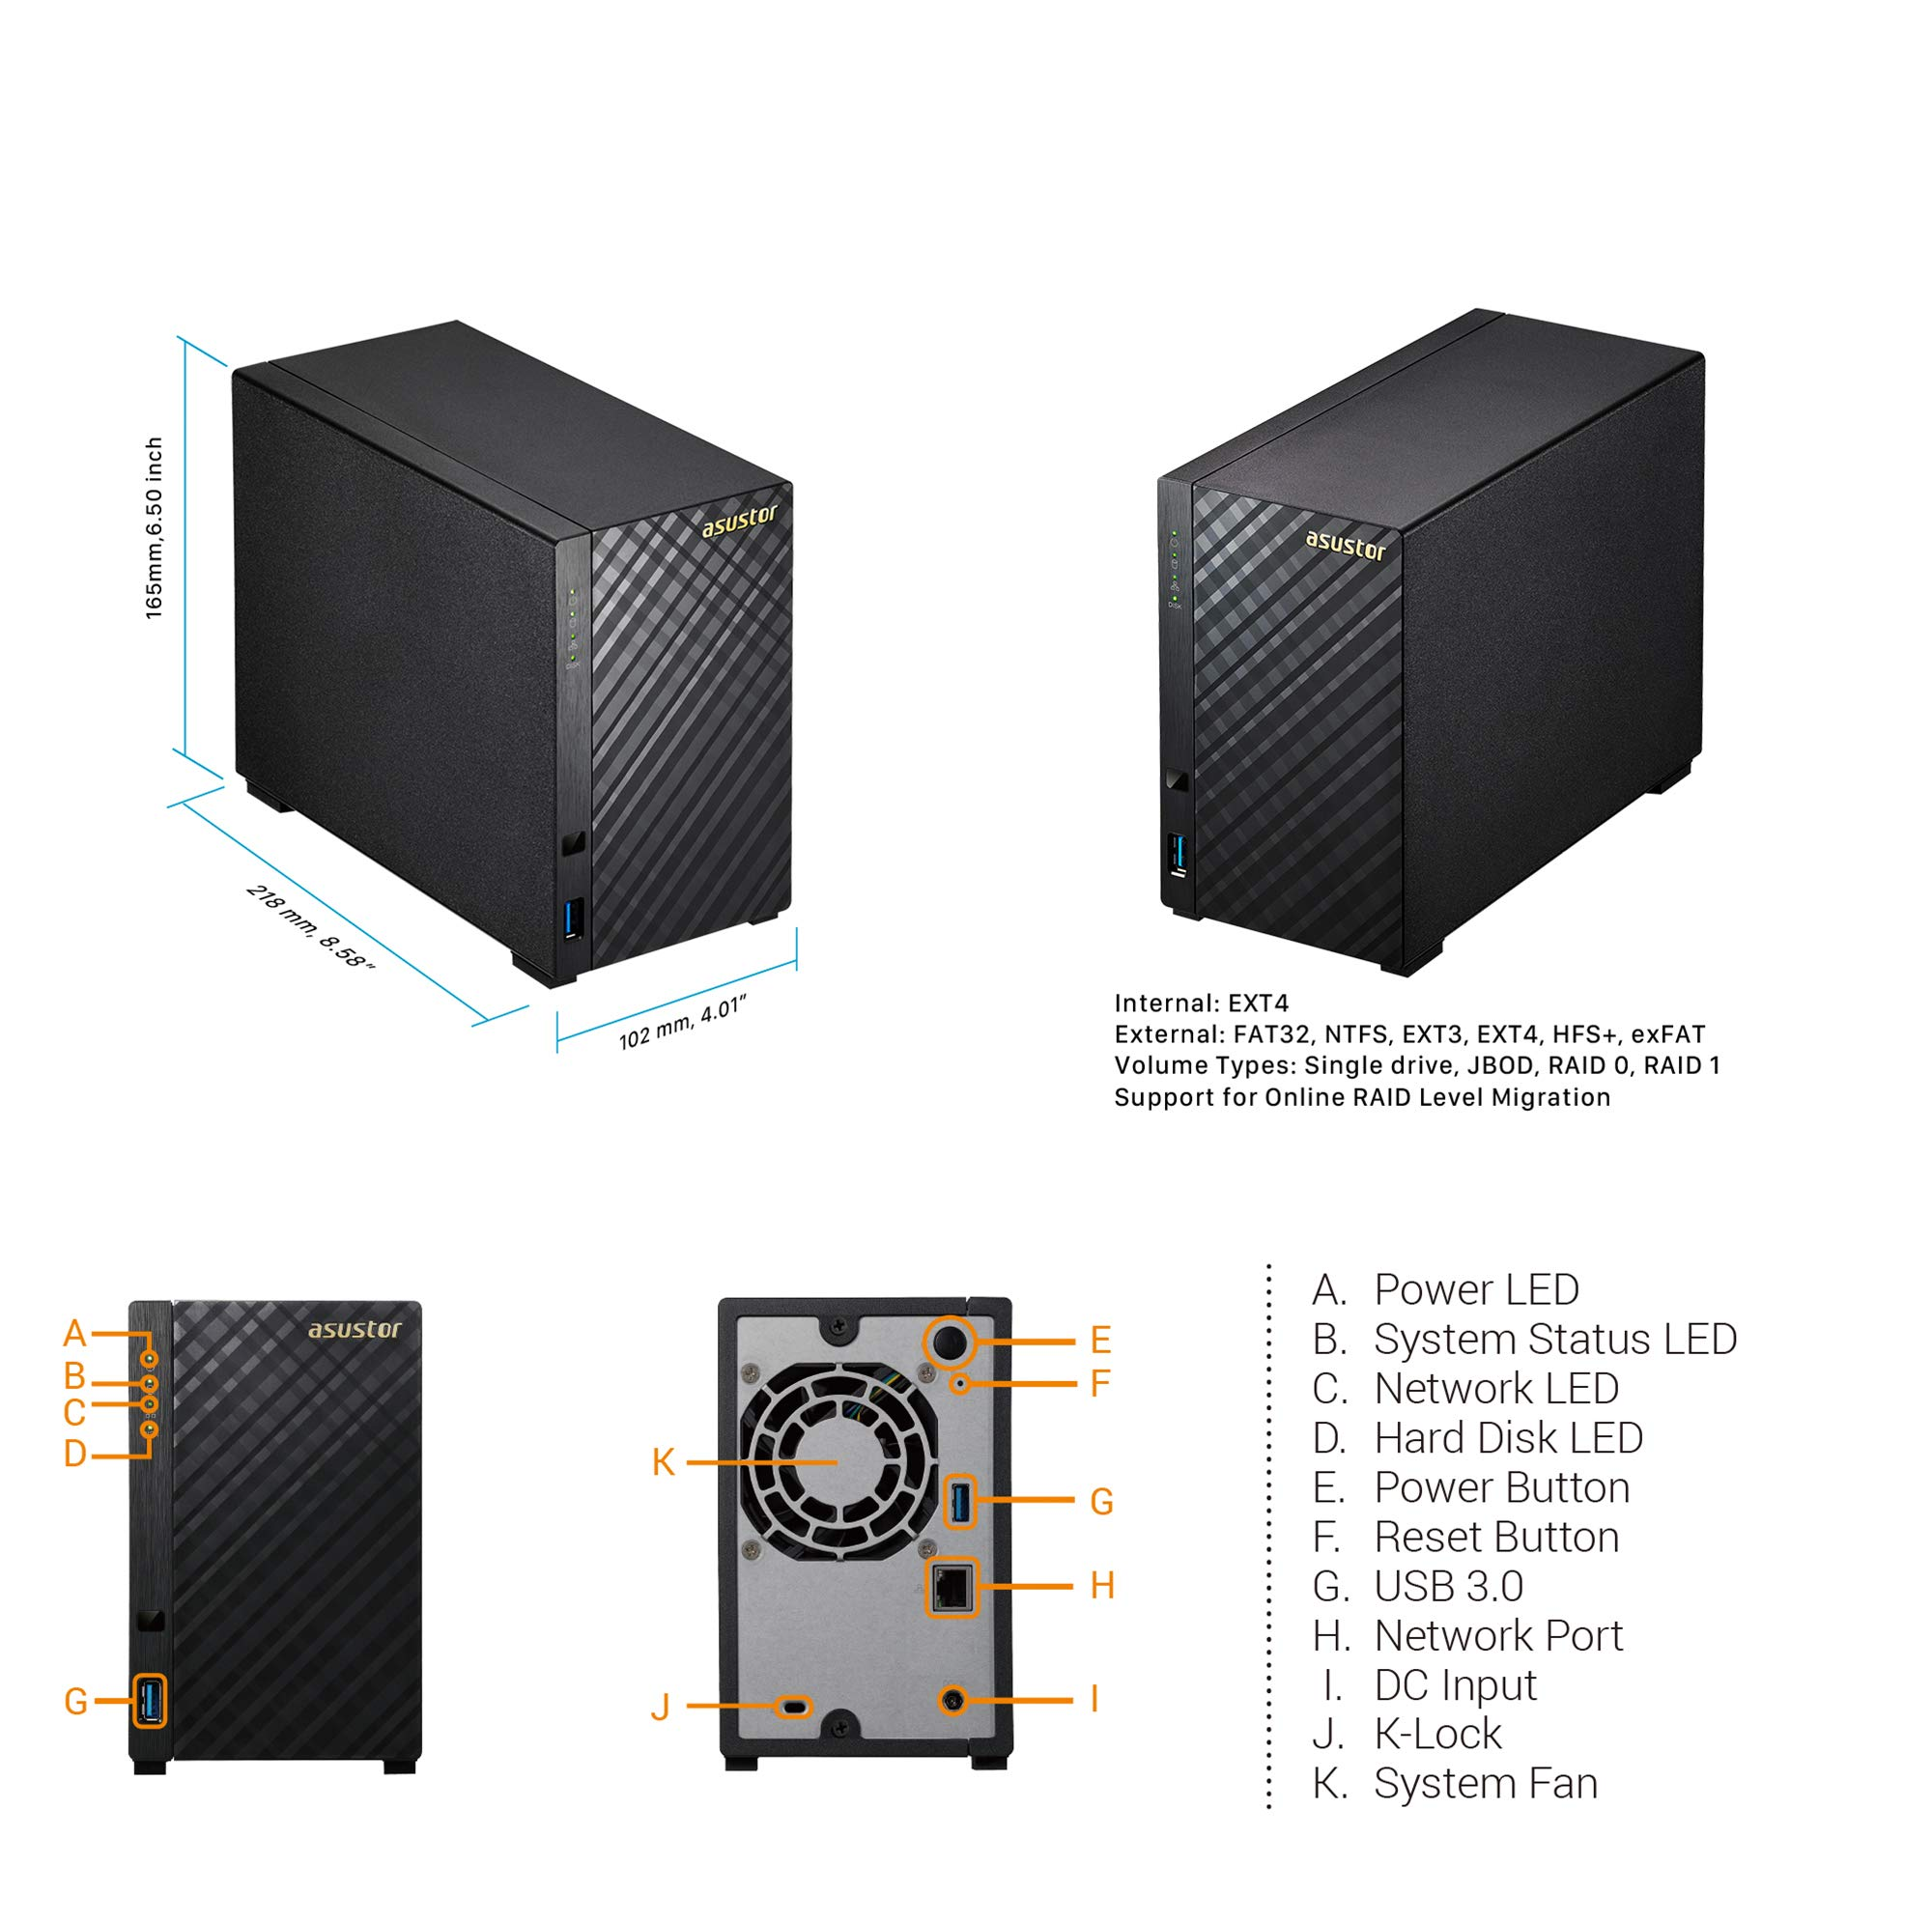 Asustor AS1002T v2   Network Attached Storage + Free exFAT License   1.6GHz Dual-Core, 512MB RAM   Personal Private Cloud   Home Media Server (2 Bay Diskless NAS) by Asustor (Image #3)